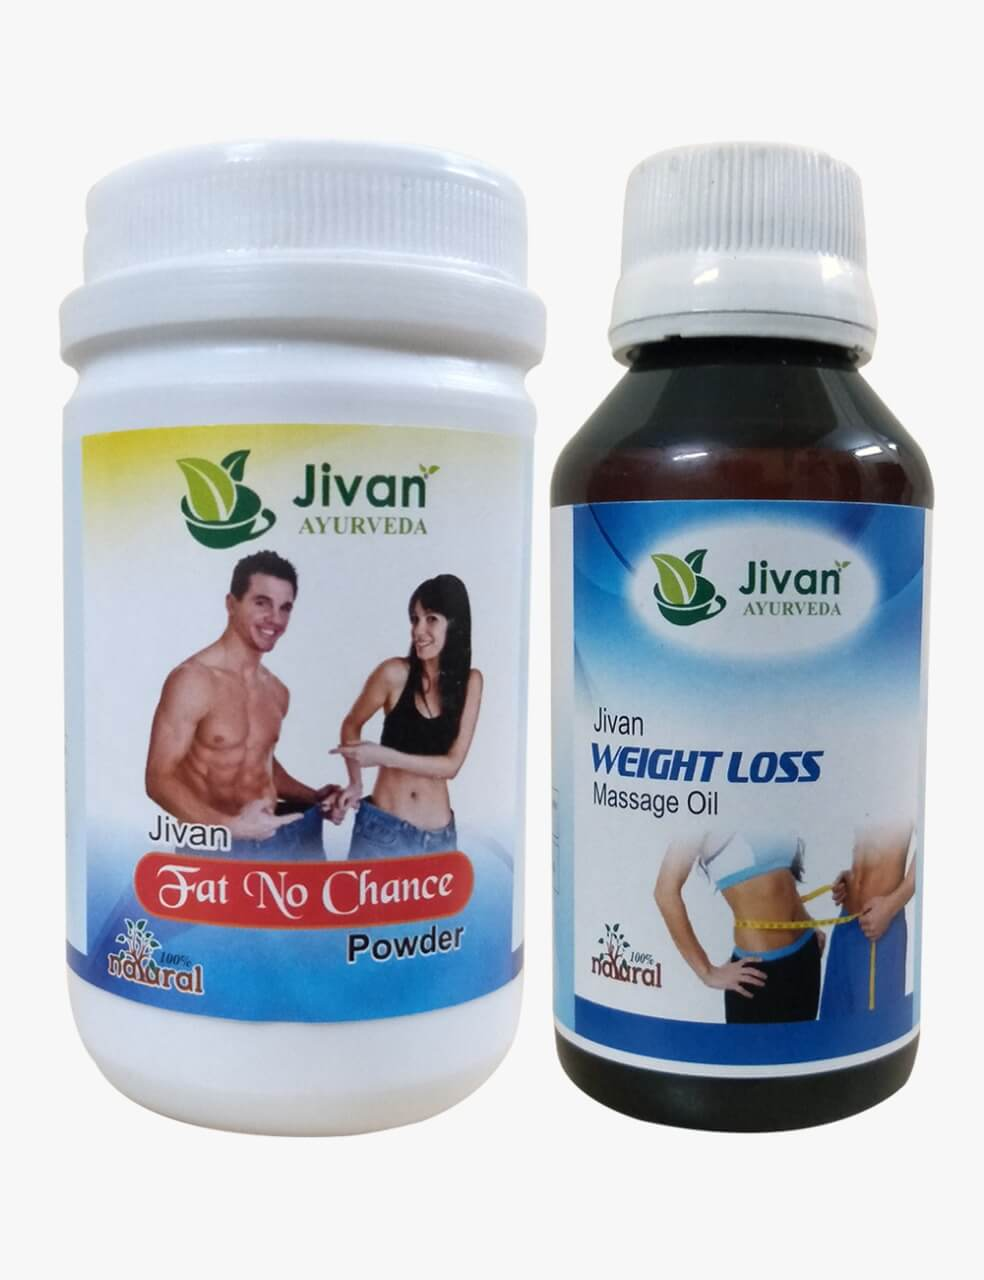 https://www.jivanayurveda.com//Ipae_image/product/779963221-jivan-weight-loss-pack.jpeg